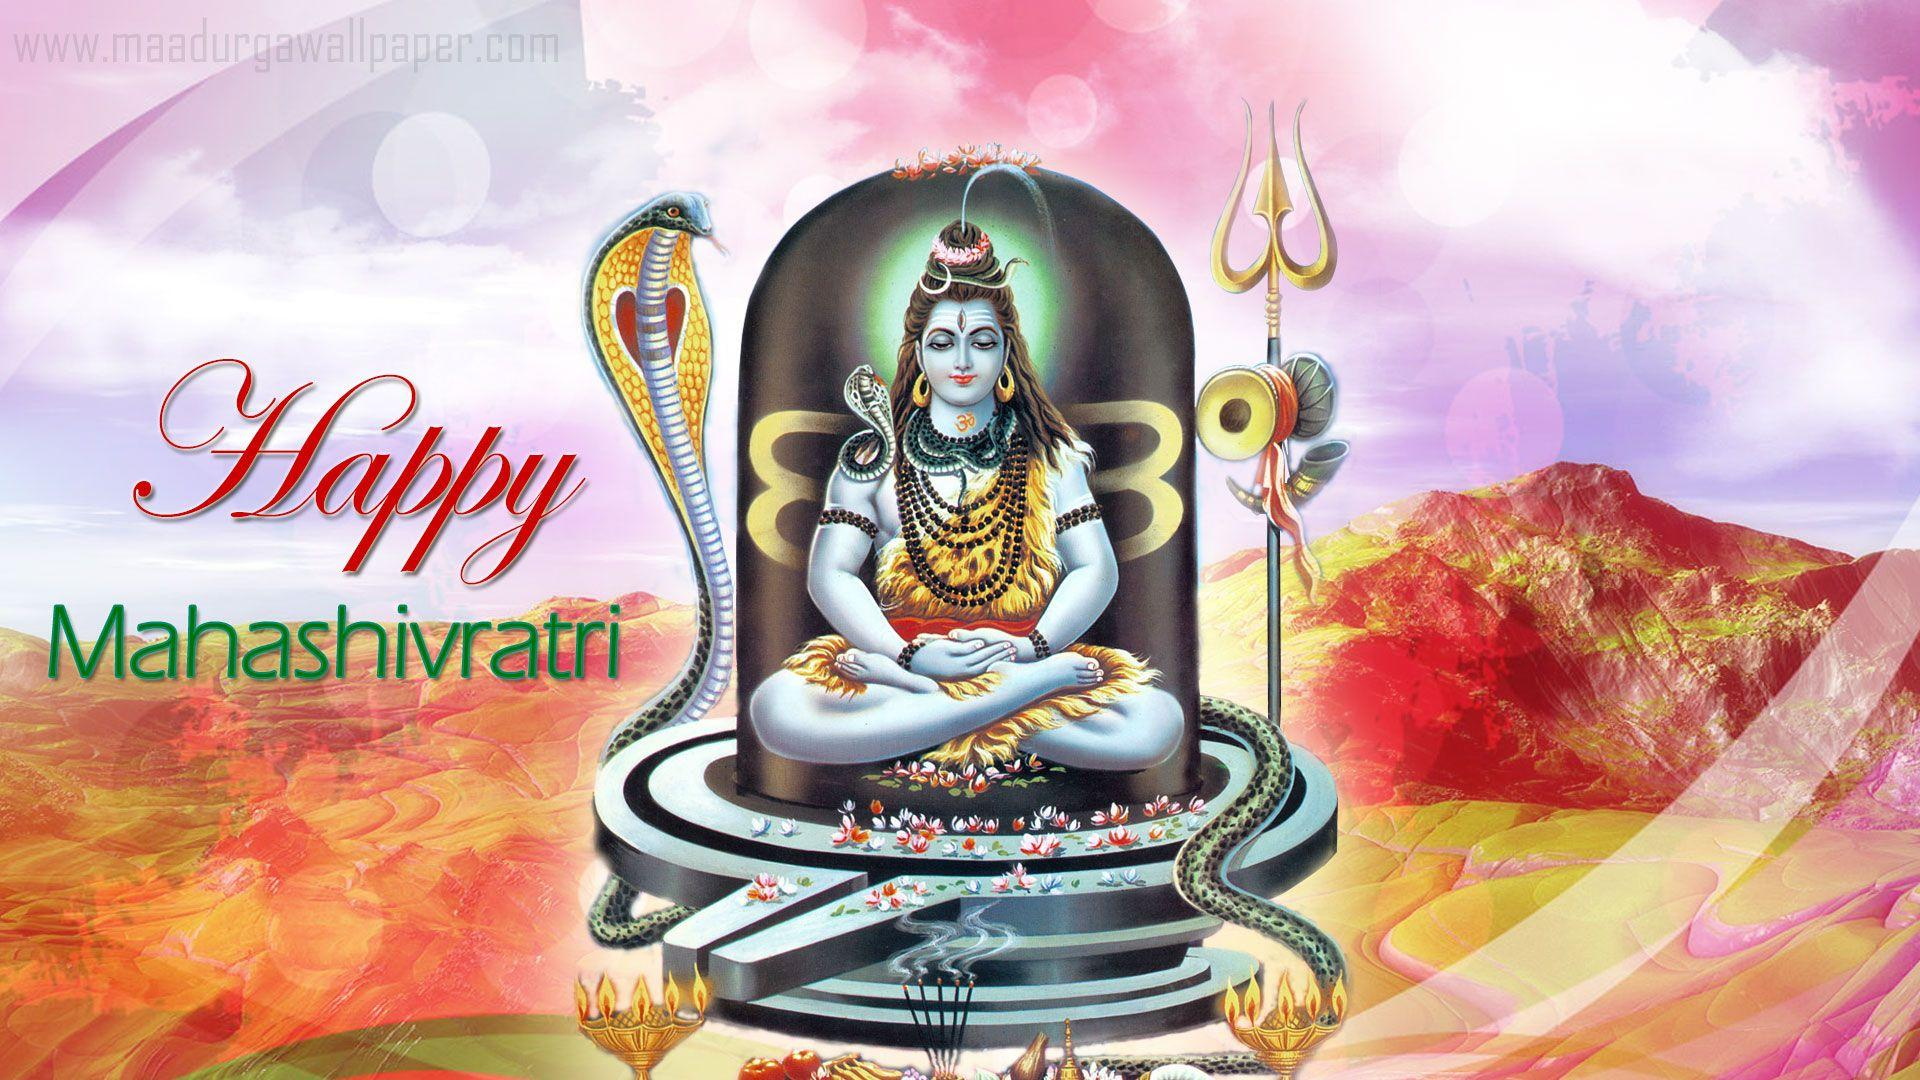 Maha Shivratri wallpaper hd & Images download